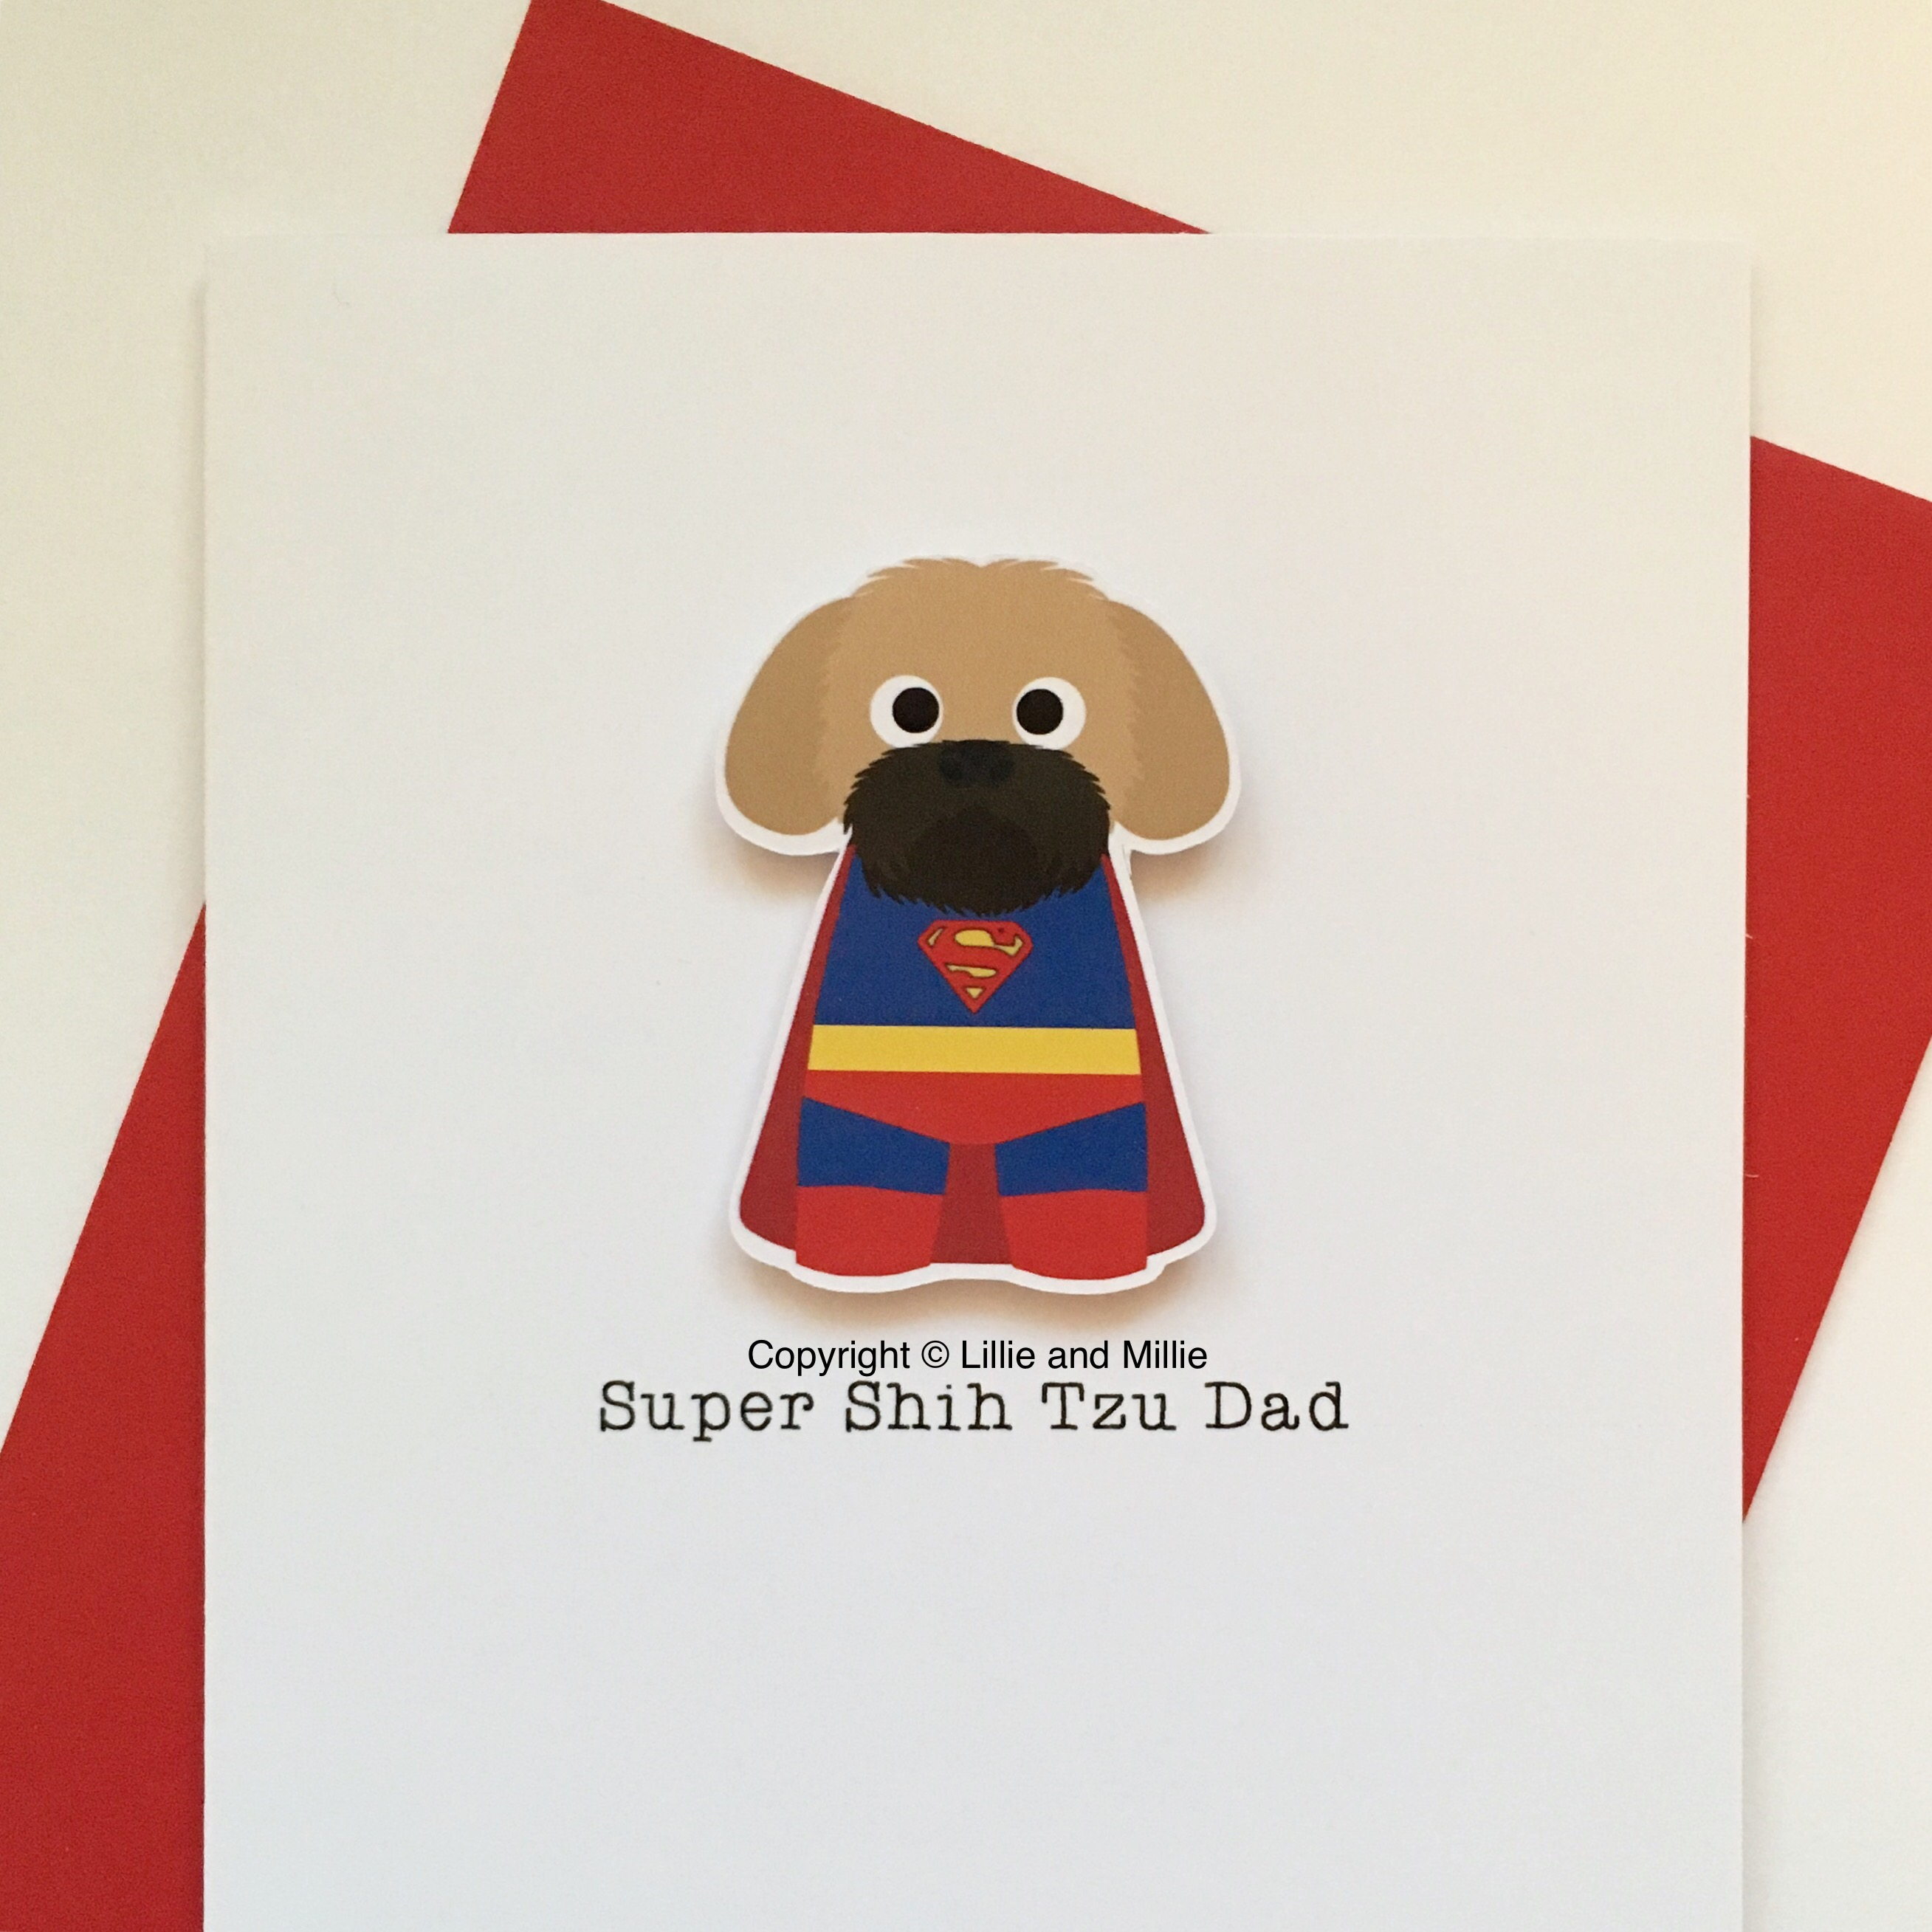 Cute and Cuddly Black Mask Super Shih Tzu Dad Card